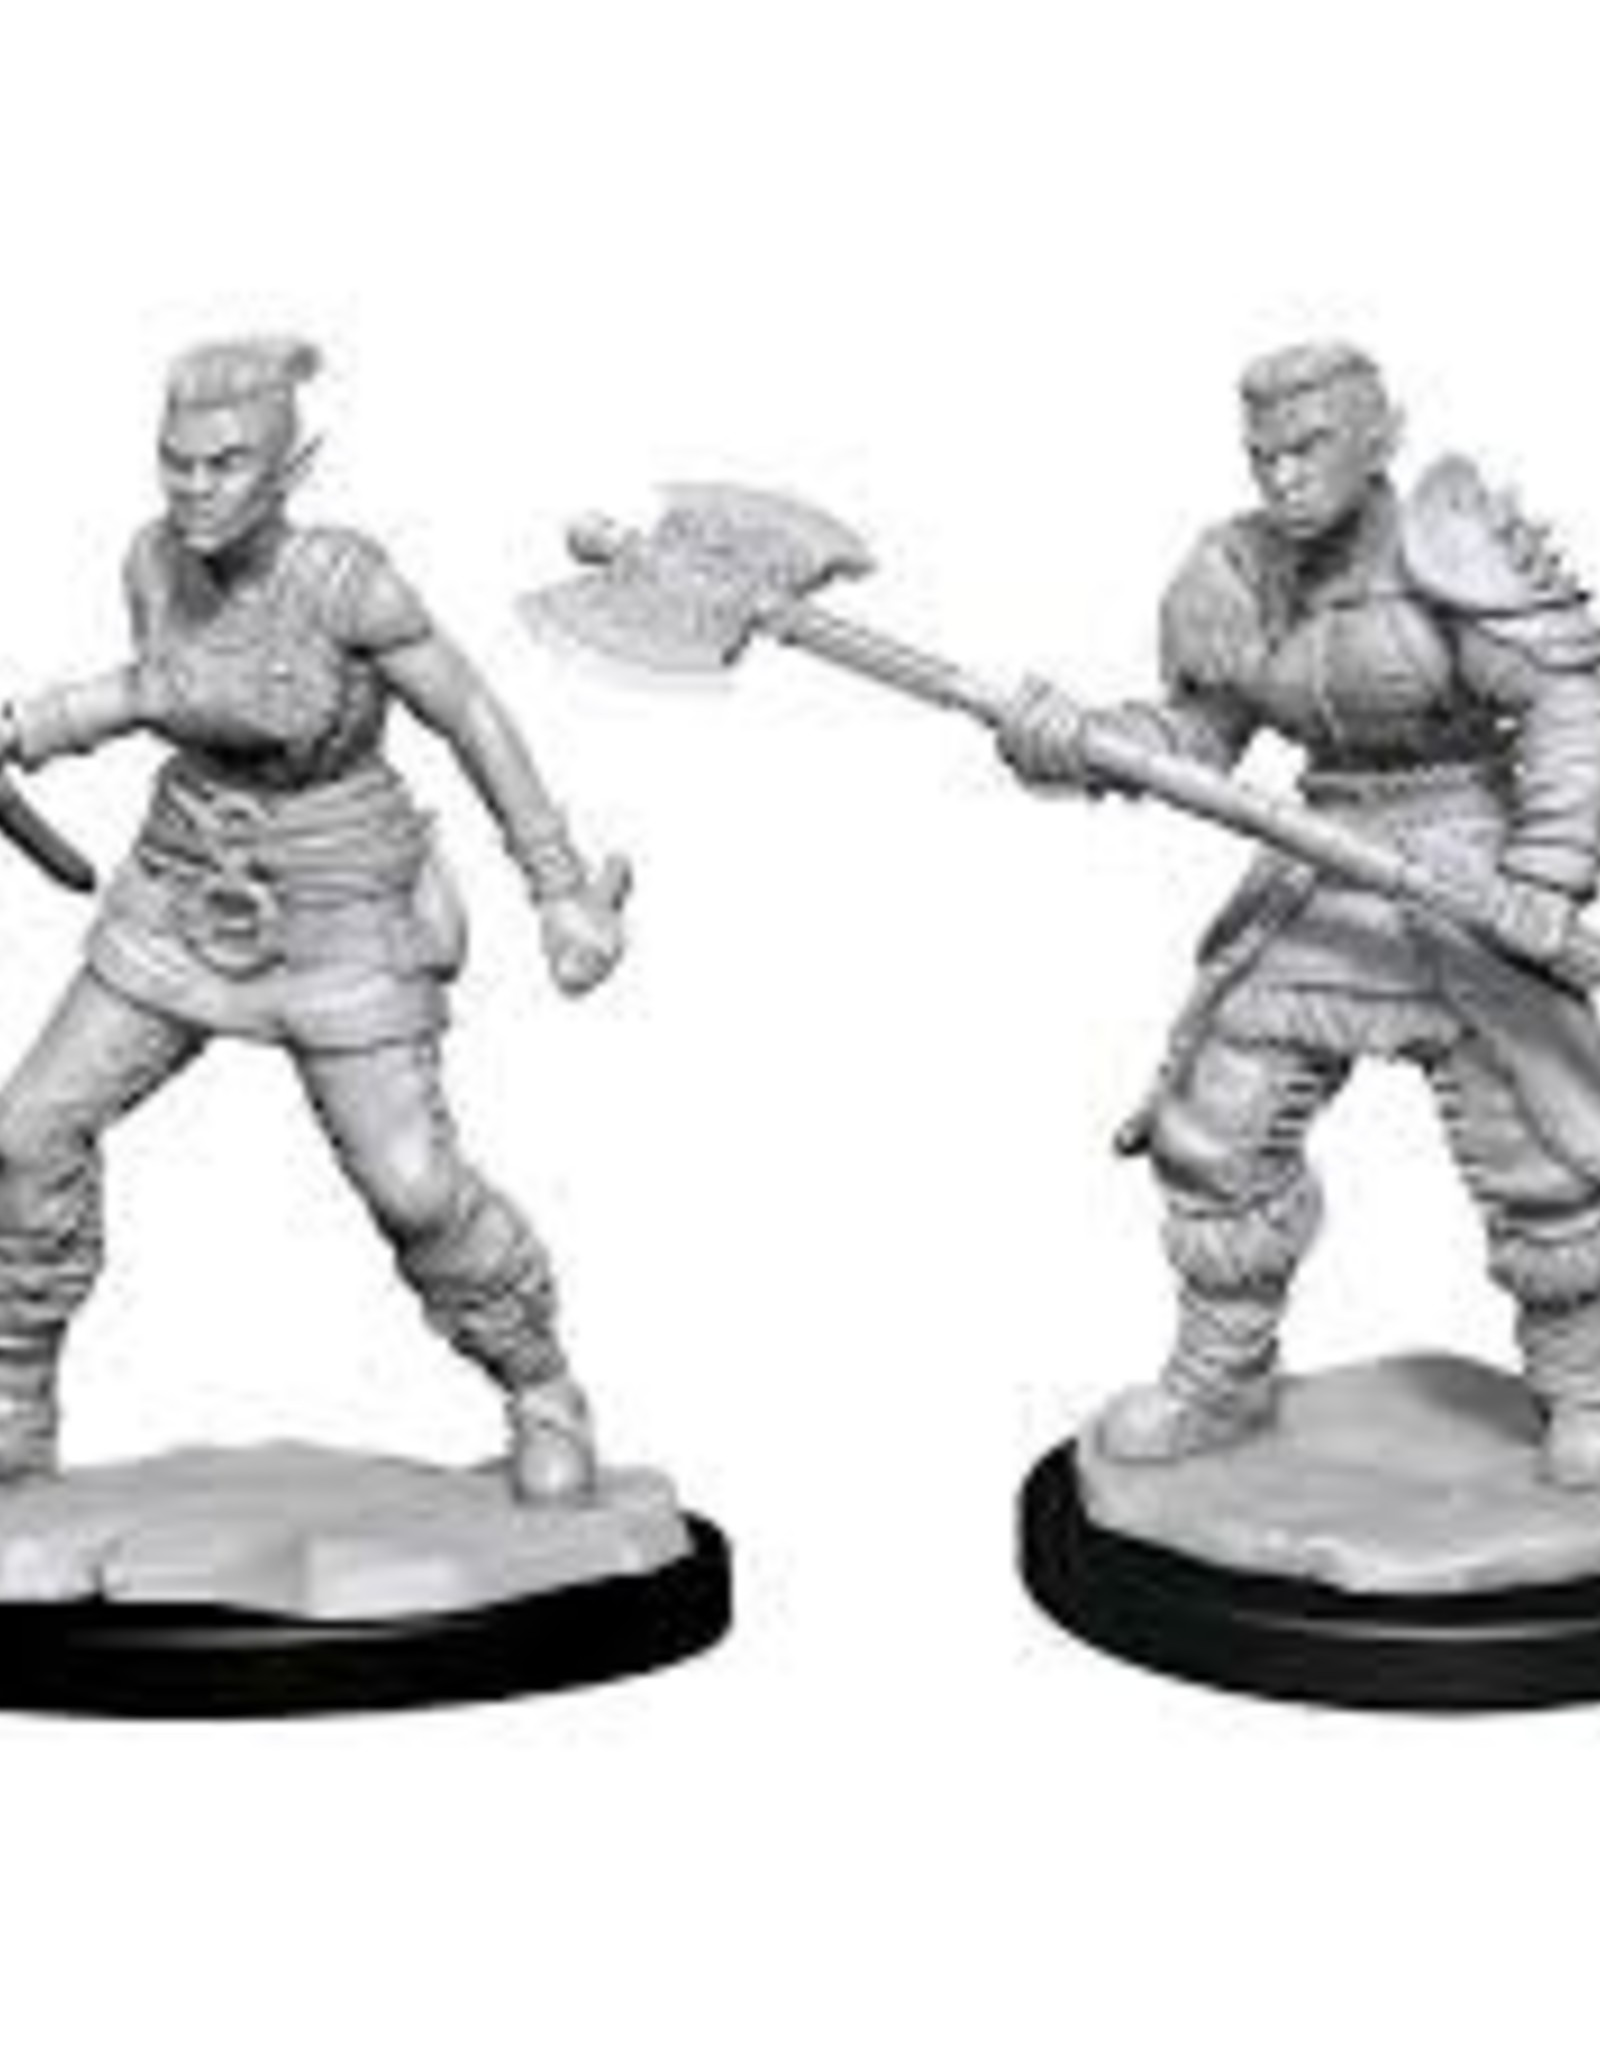 WizKids D&D Nolzur Orc Barbarian (She/Her/They/Them)